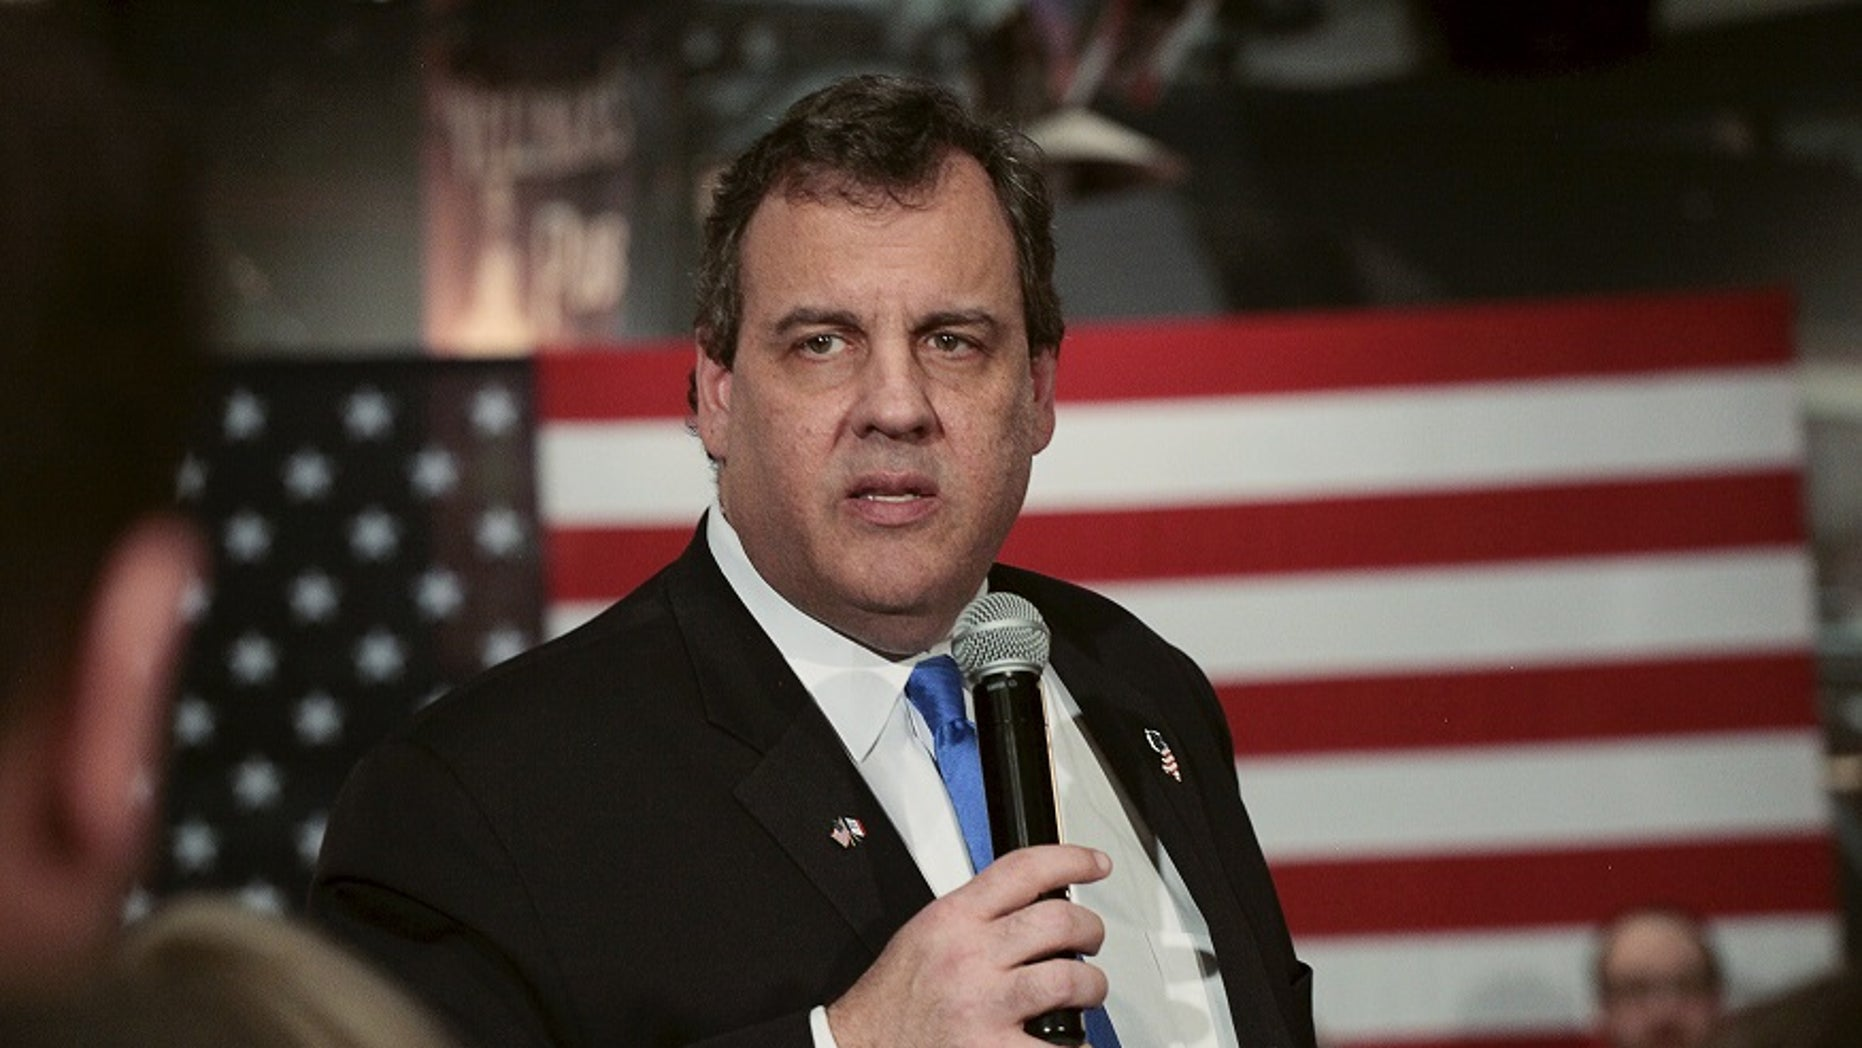 Chris Christie might have a hard time talking politics on ABC News programs that focus on weather and celebrity gossip.